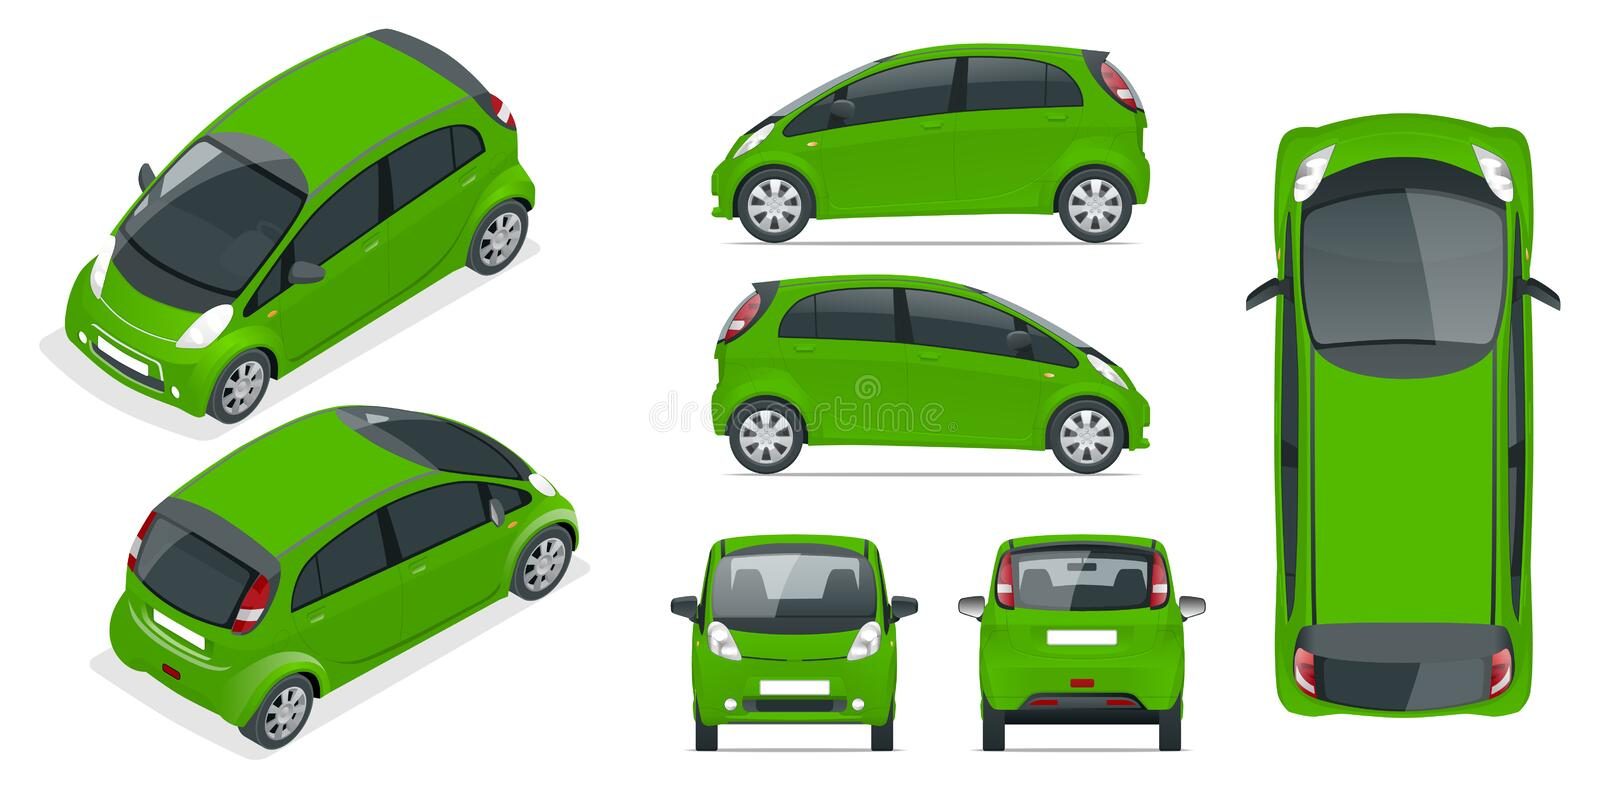 Small Compact Electric vehicle or hybrid car. Eco-friendly hi-tech auto. Easy color change. Template vector isolated on stock illustration